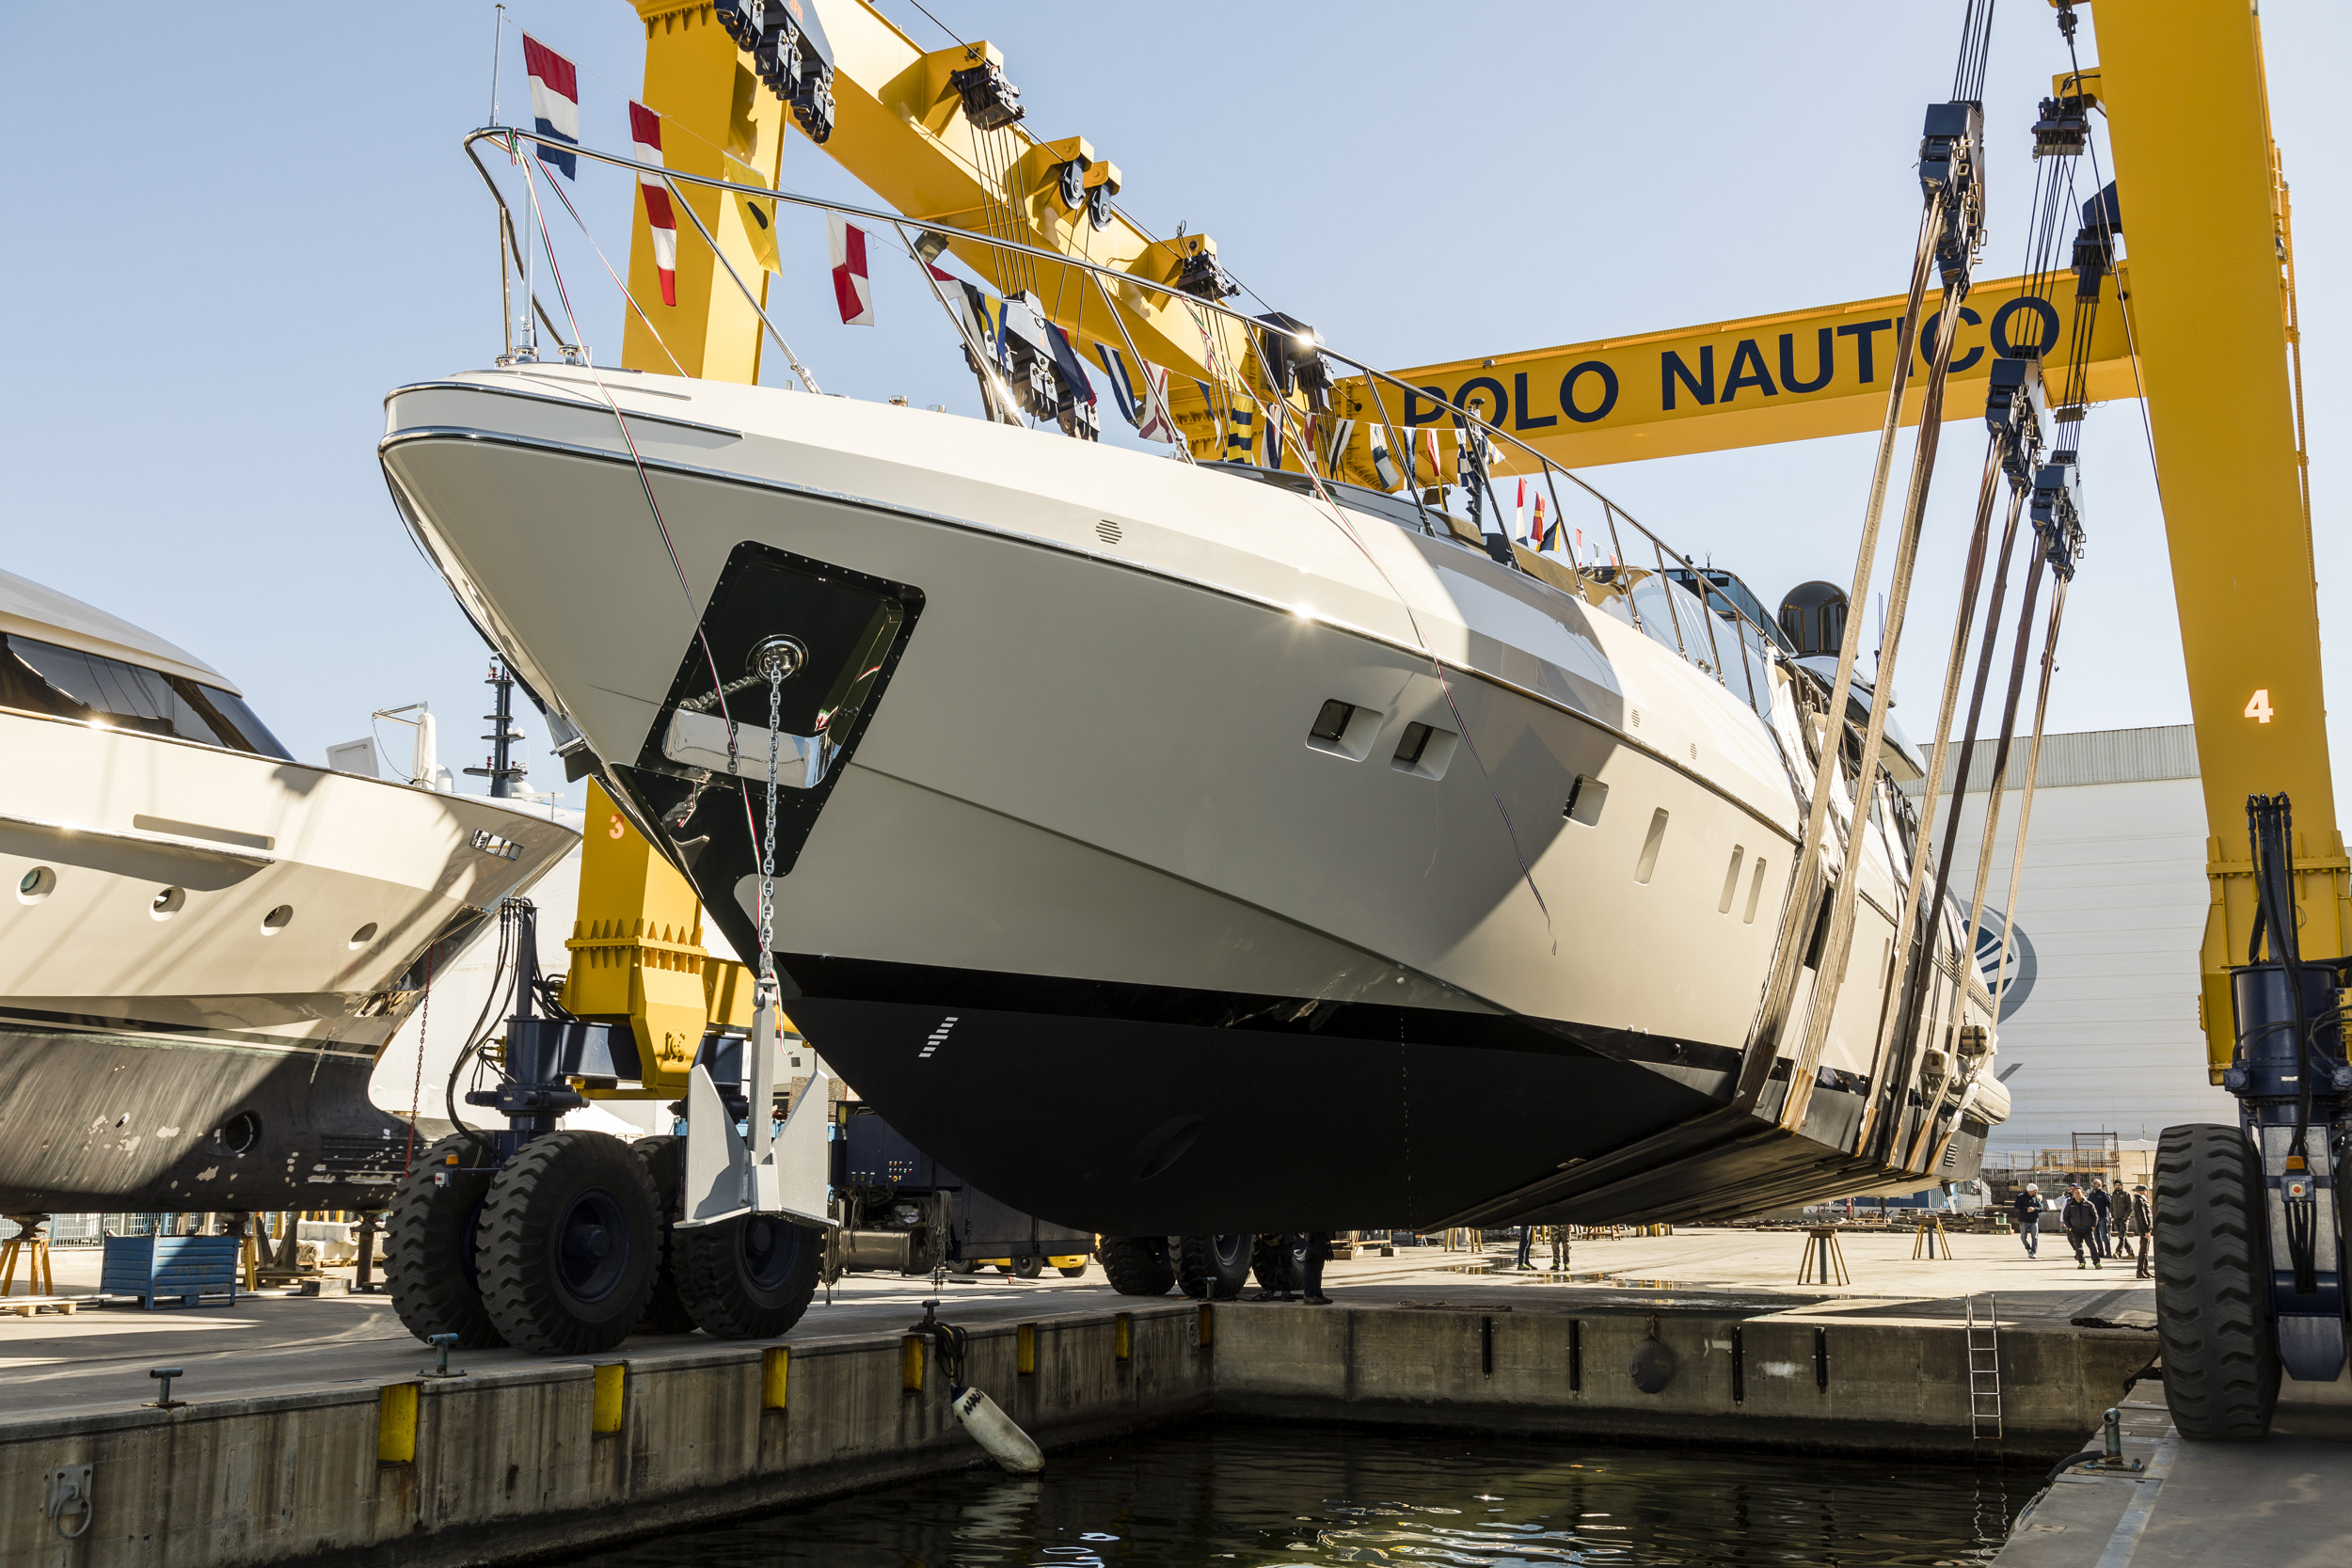 Launching of Mangusta 110 series, hull no. 4